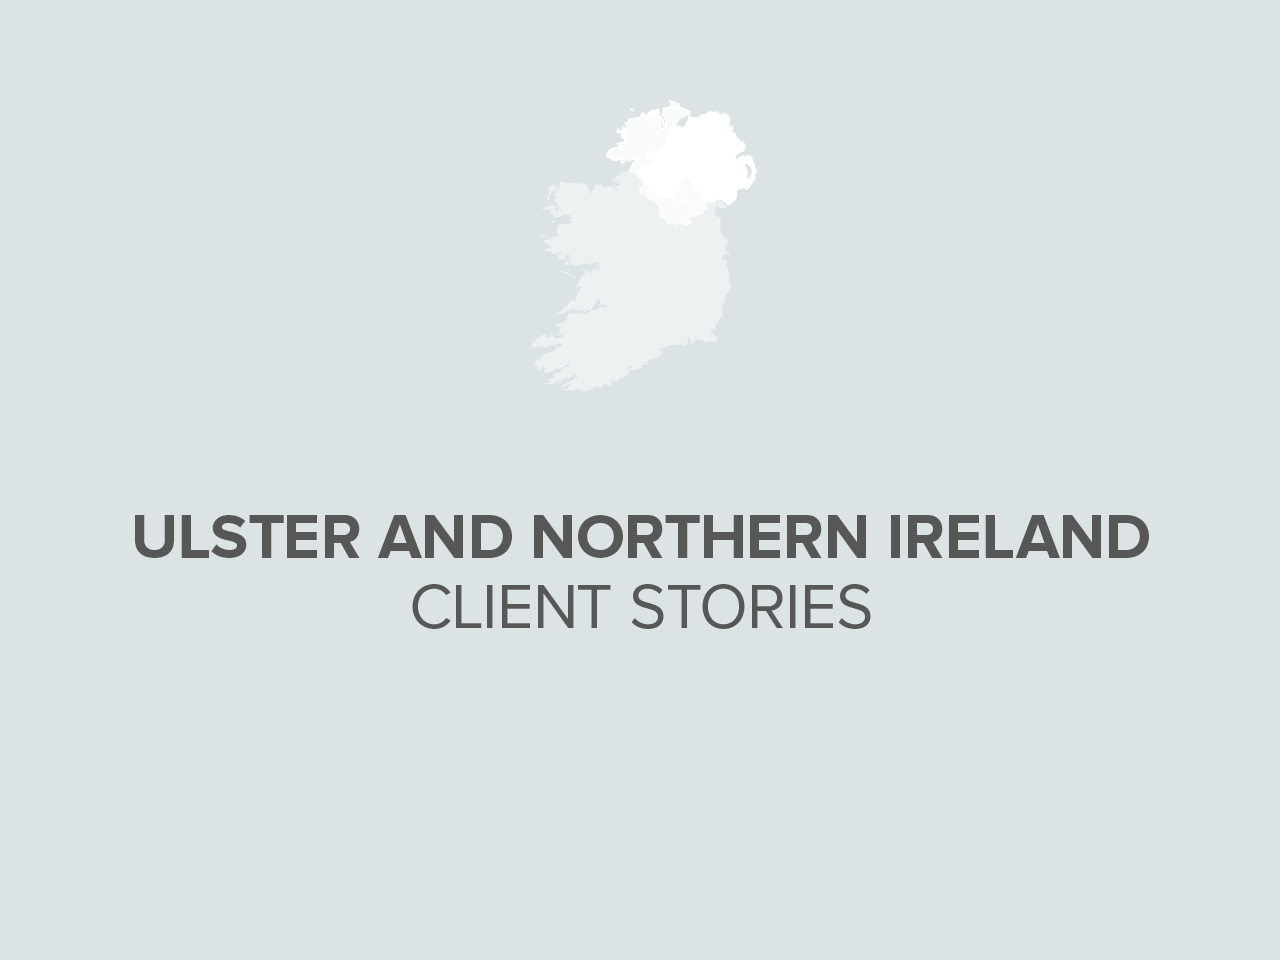 Ulster and Northern Ireland Client Stories